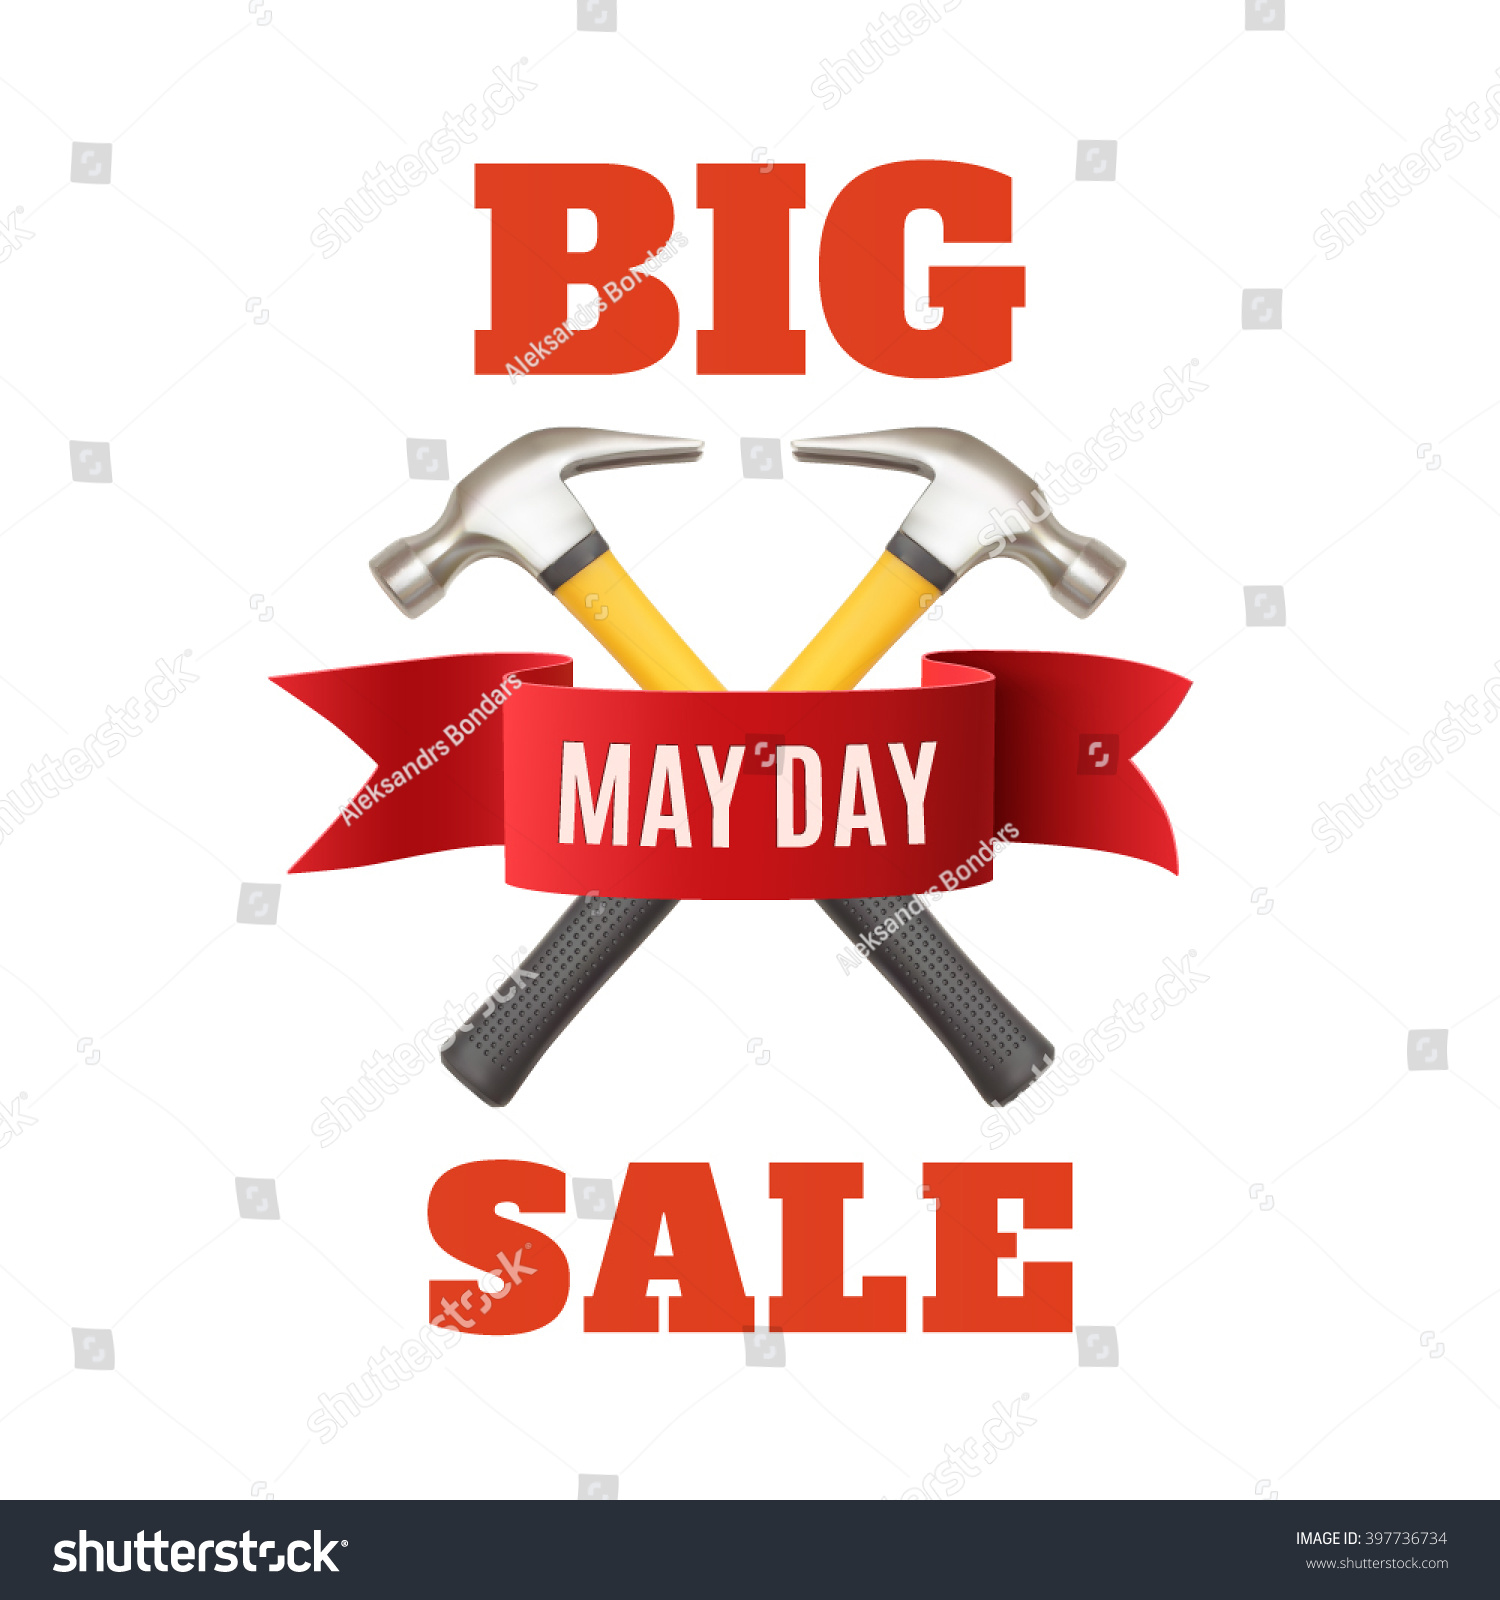 Big May Day Sale May 1st Stock Vector (2018) 397736734 - Shutterstock